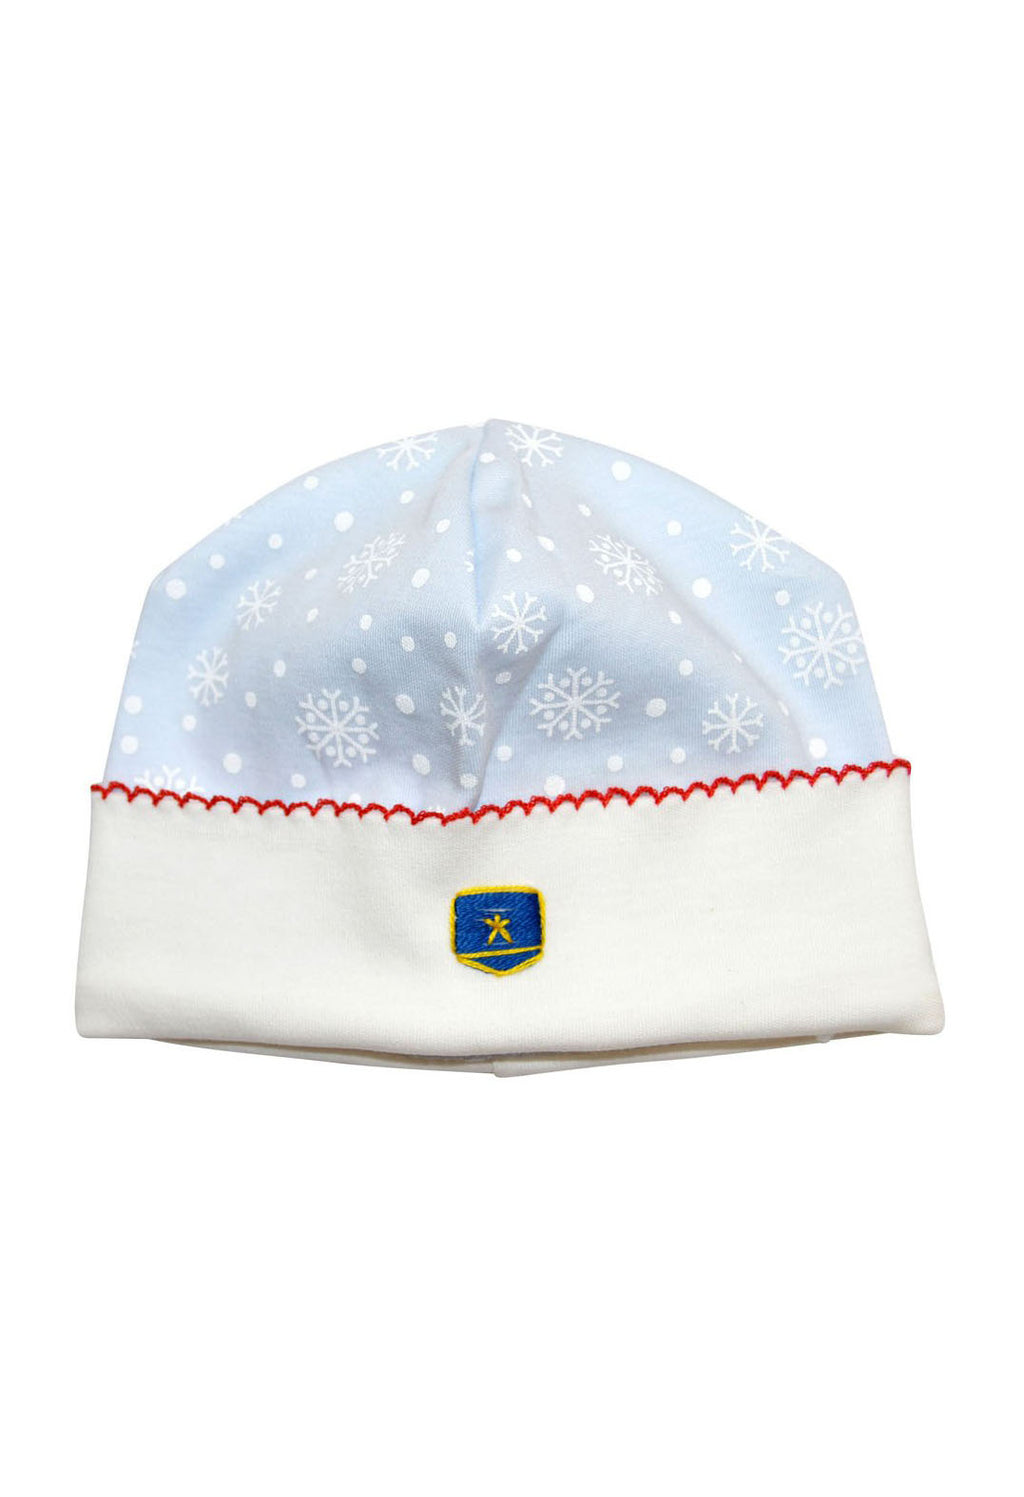 Baby Boy's Snowflake Nutcracker Hat - Little Threads Inc. Children's Clothing